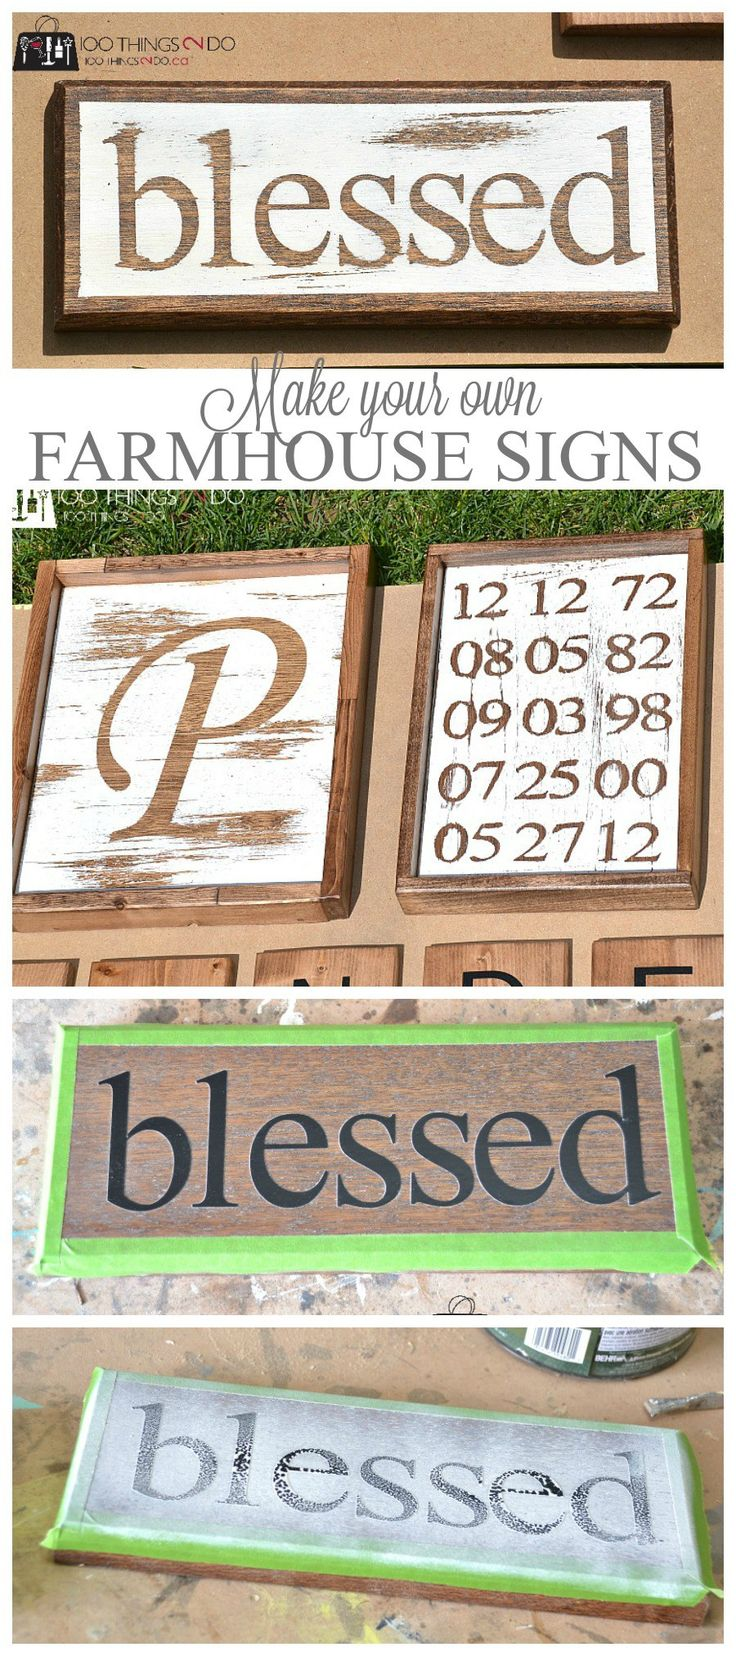 Primitive stencil home sweet home 12x12 for painting signs crafts - Make Your Own Farmhouse Signs